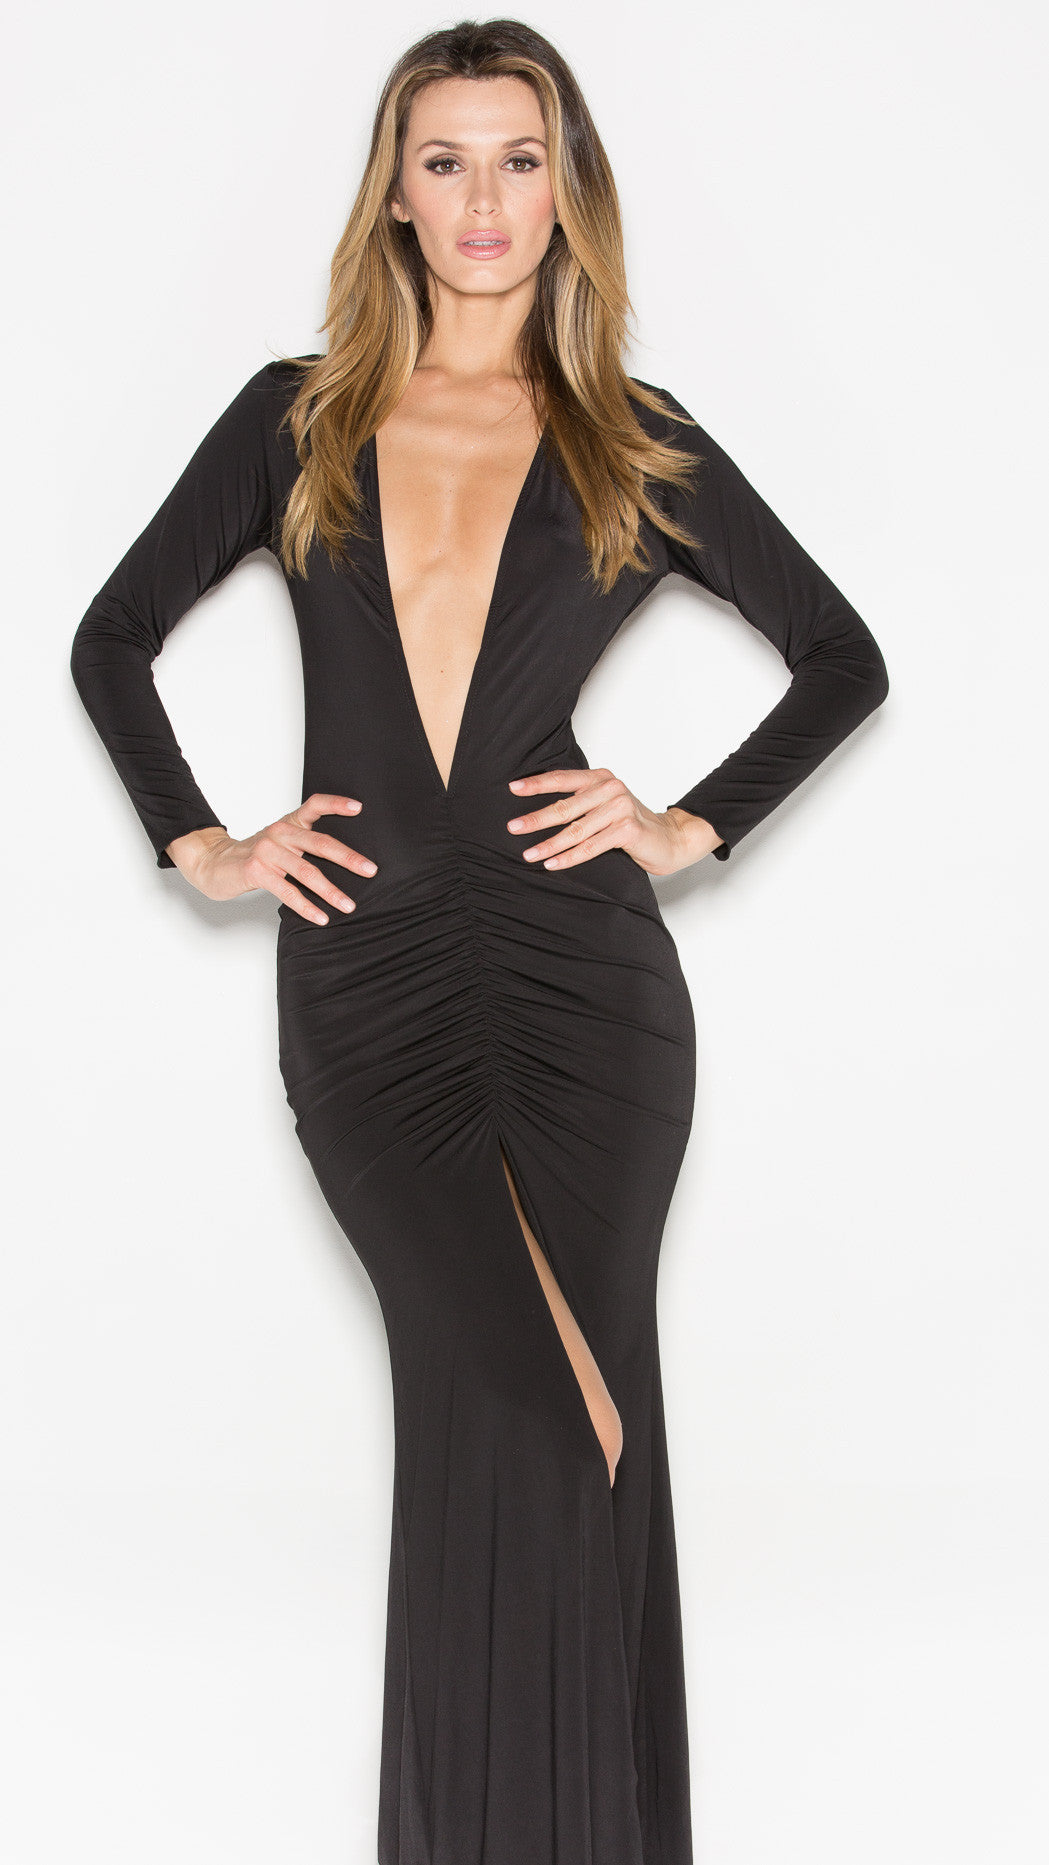 CLIO GOWN IN BLACK